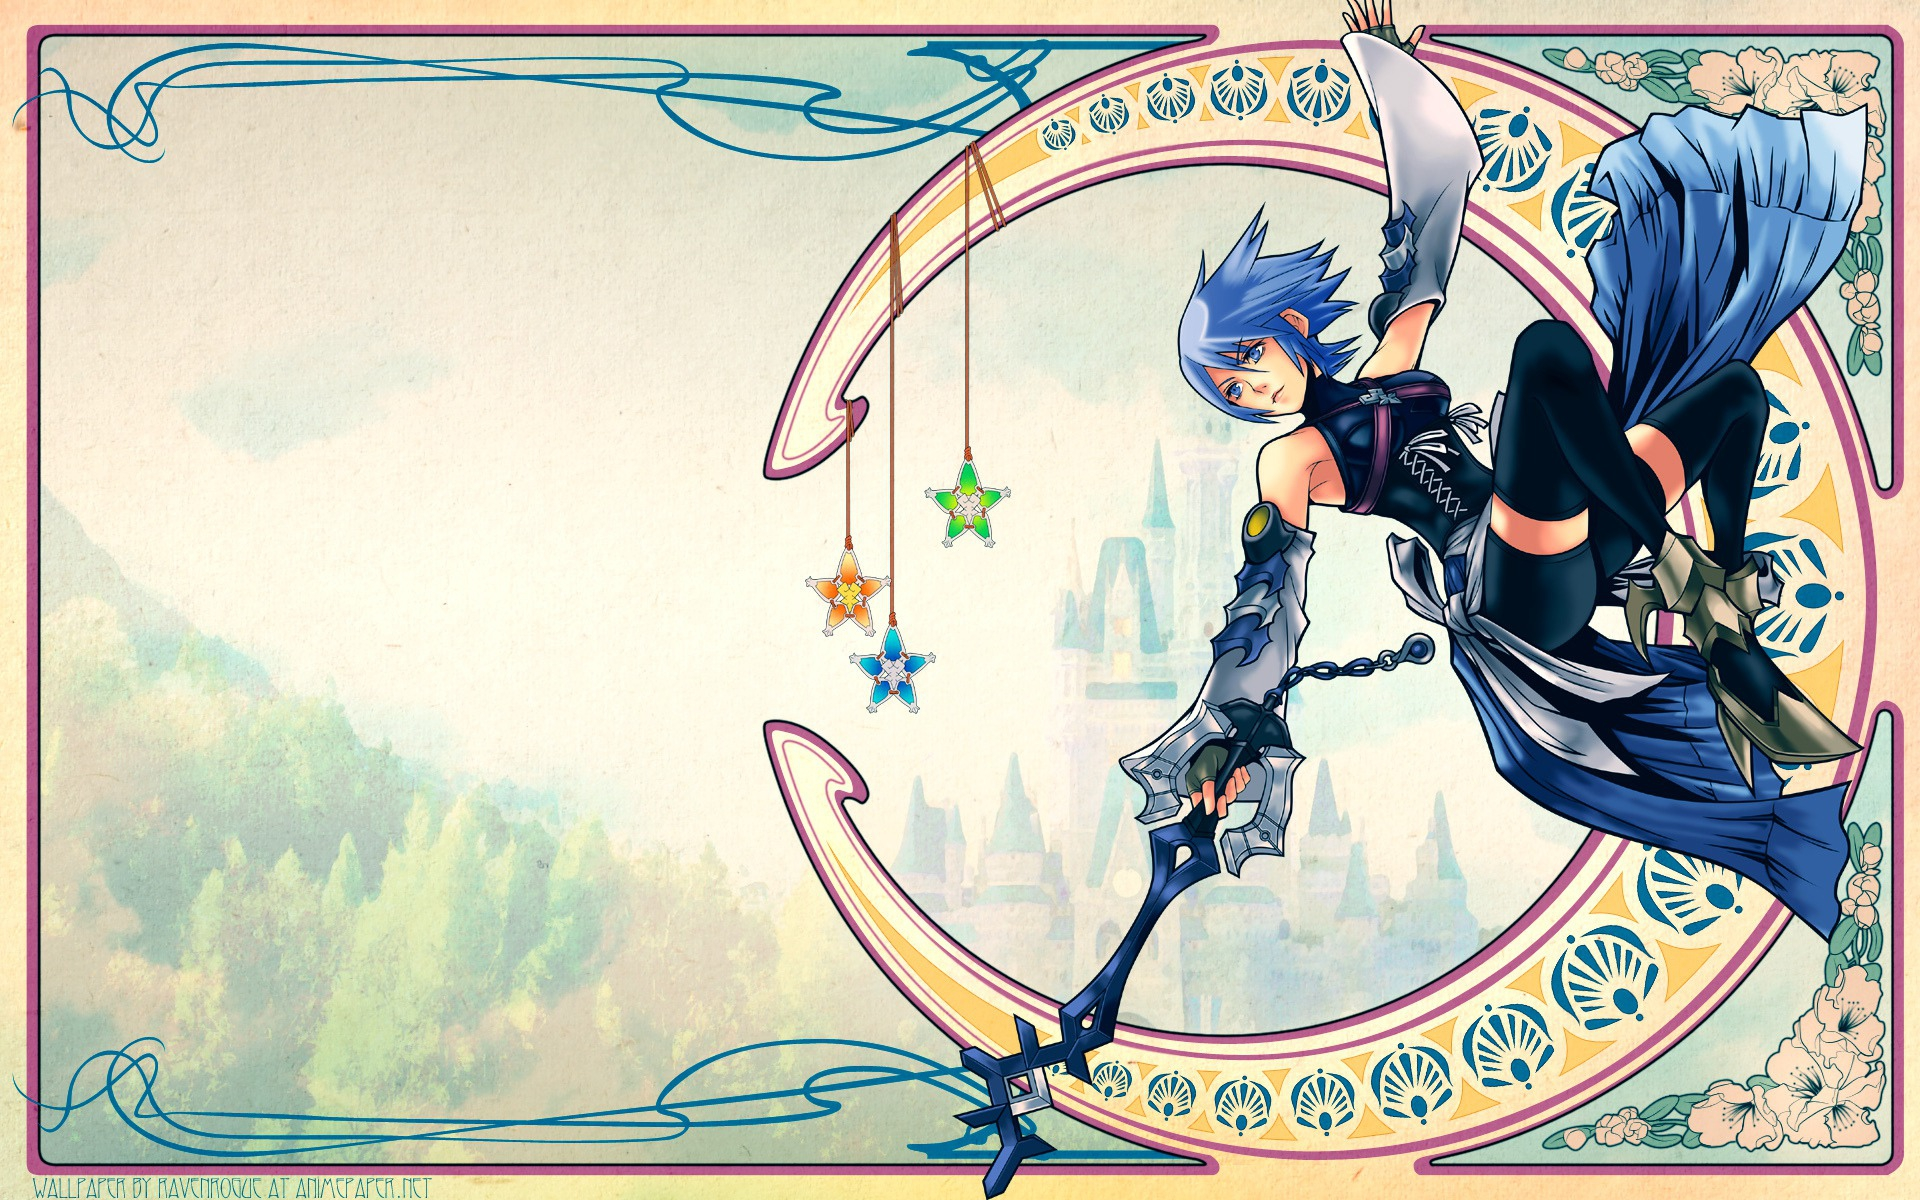 Aqua (Kingdom Hearts) · download Aqua (Kingdom Hearts) image